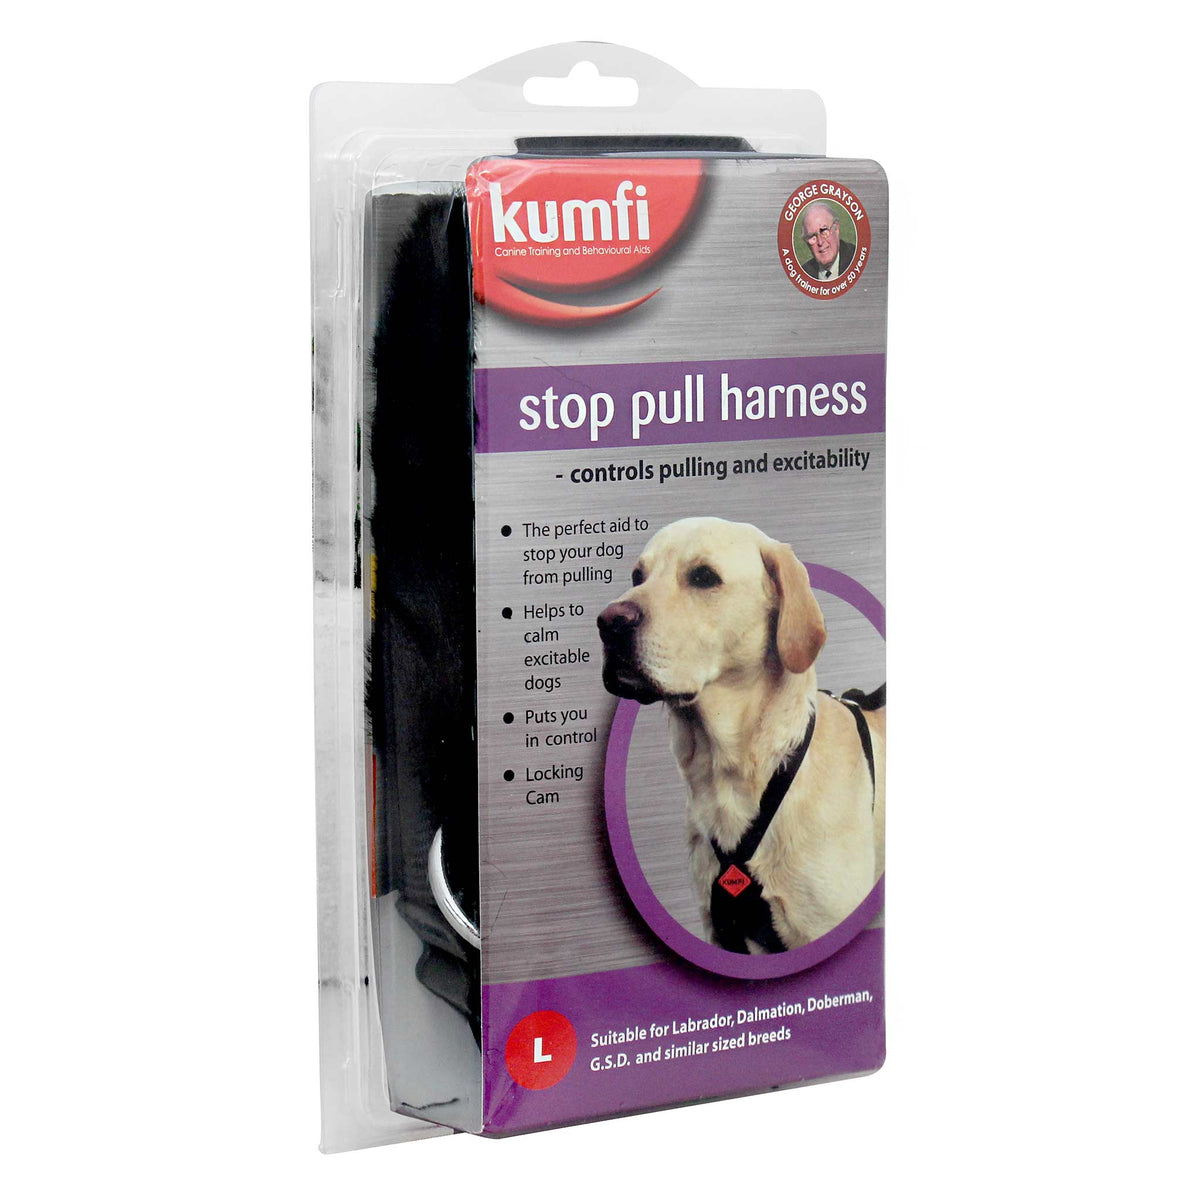 Kumfi Stop Pull Harness for Dogs